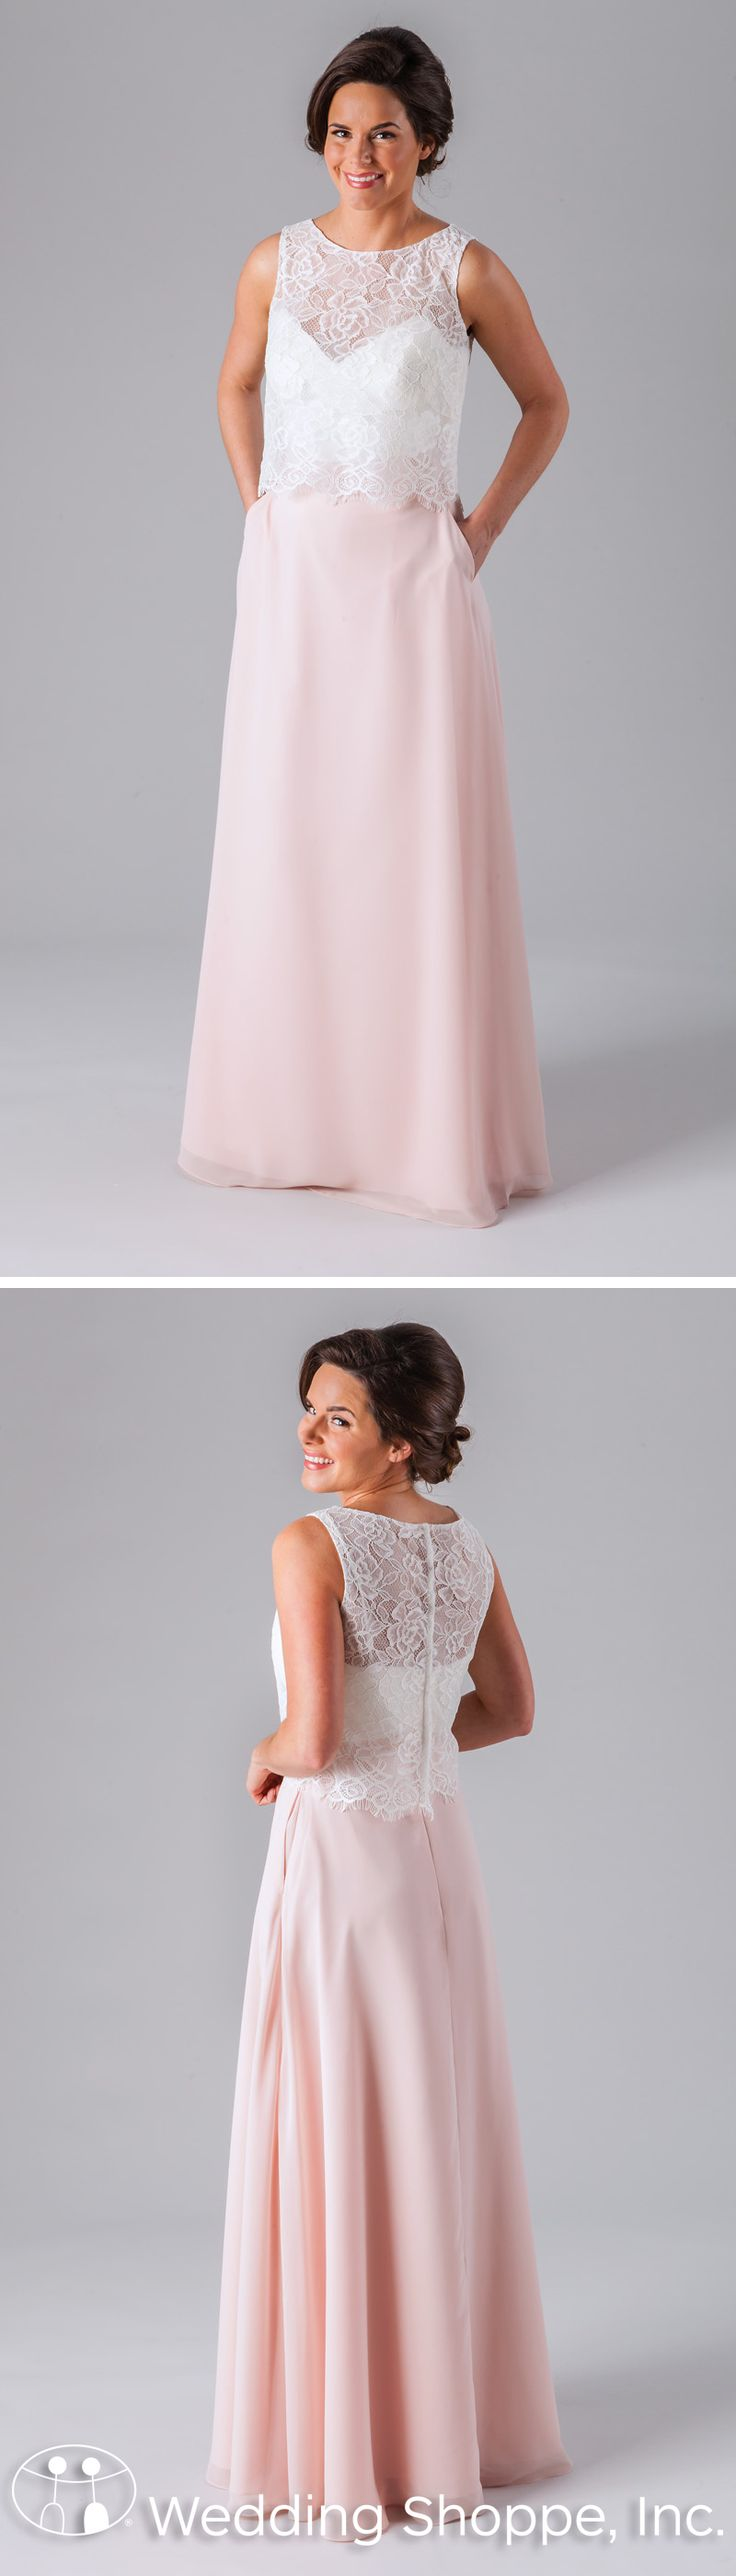 27 best two piece bridesmaid dresses wedding shoppe images on a gorgeous two piece bridesmaid dress with a lace illusion neckline top and long chiffon ombrellifo Images